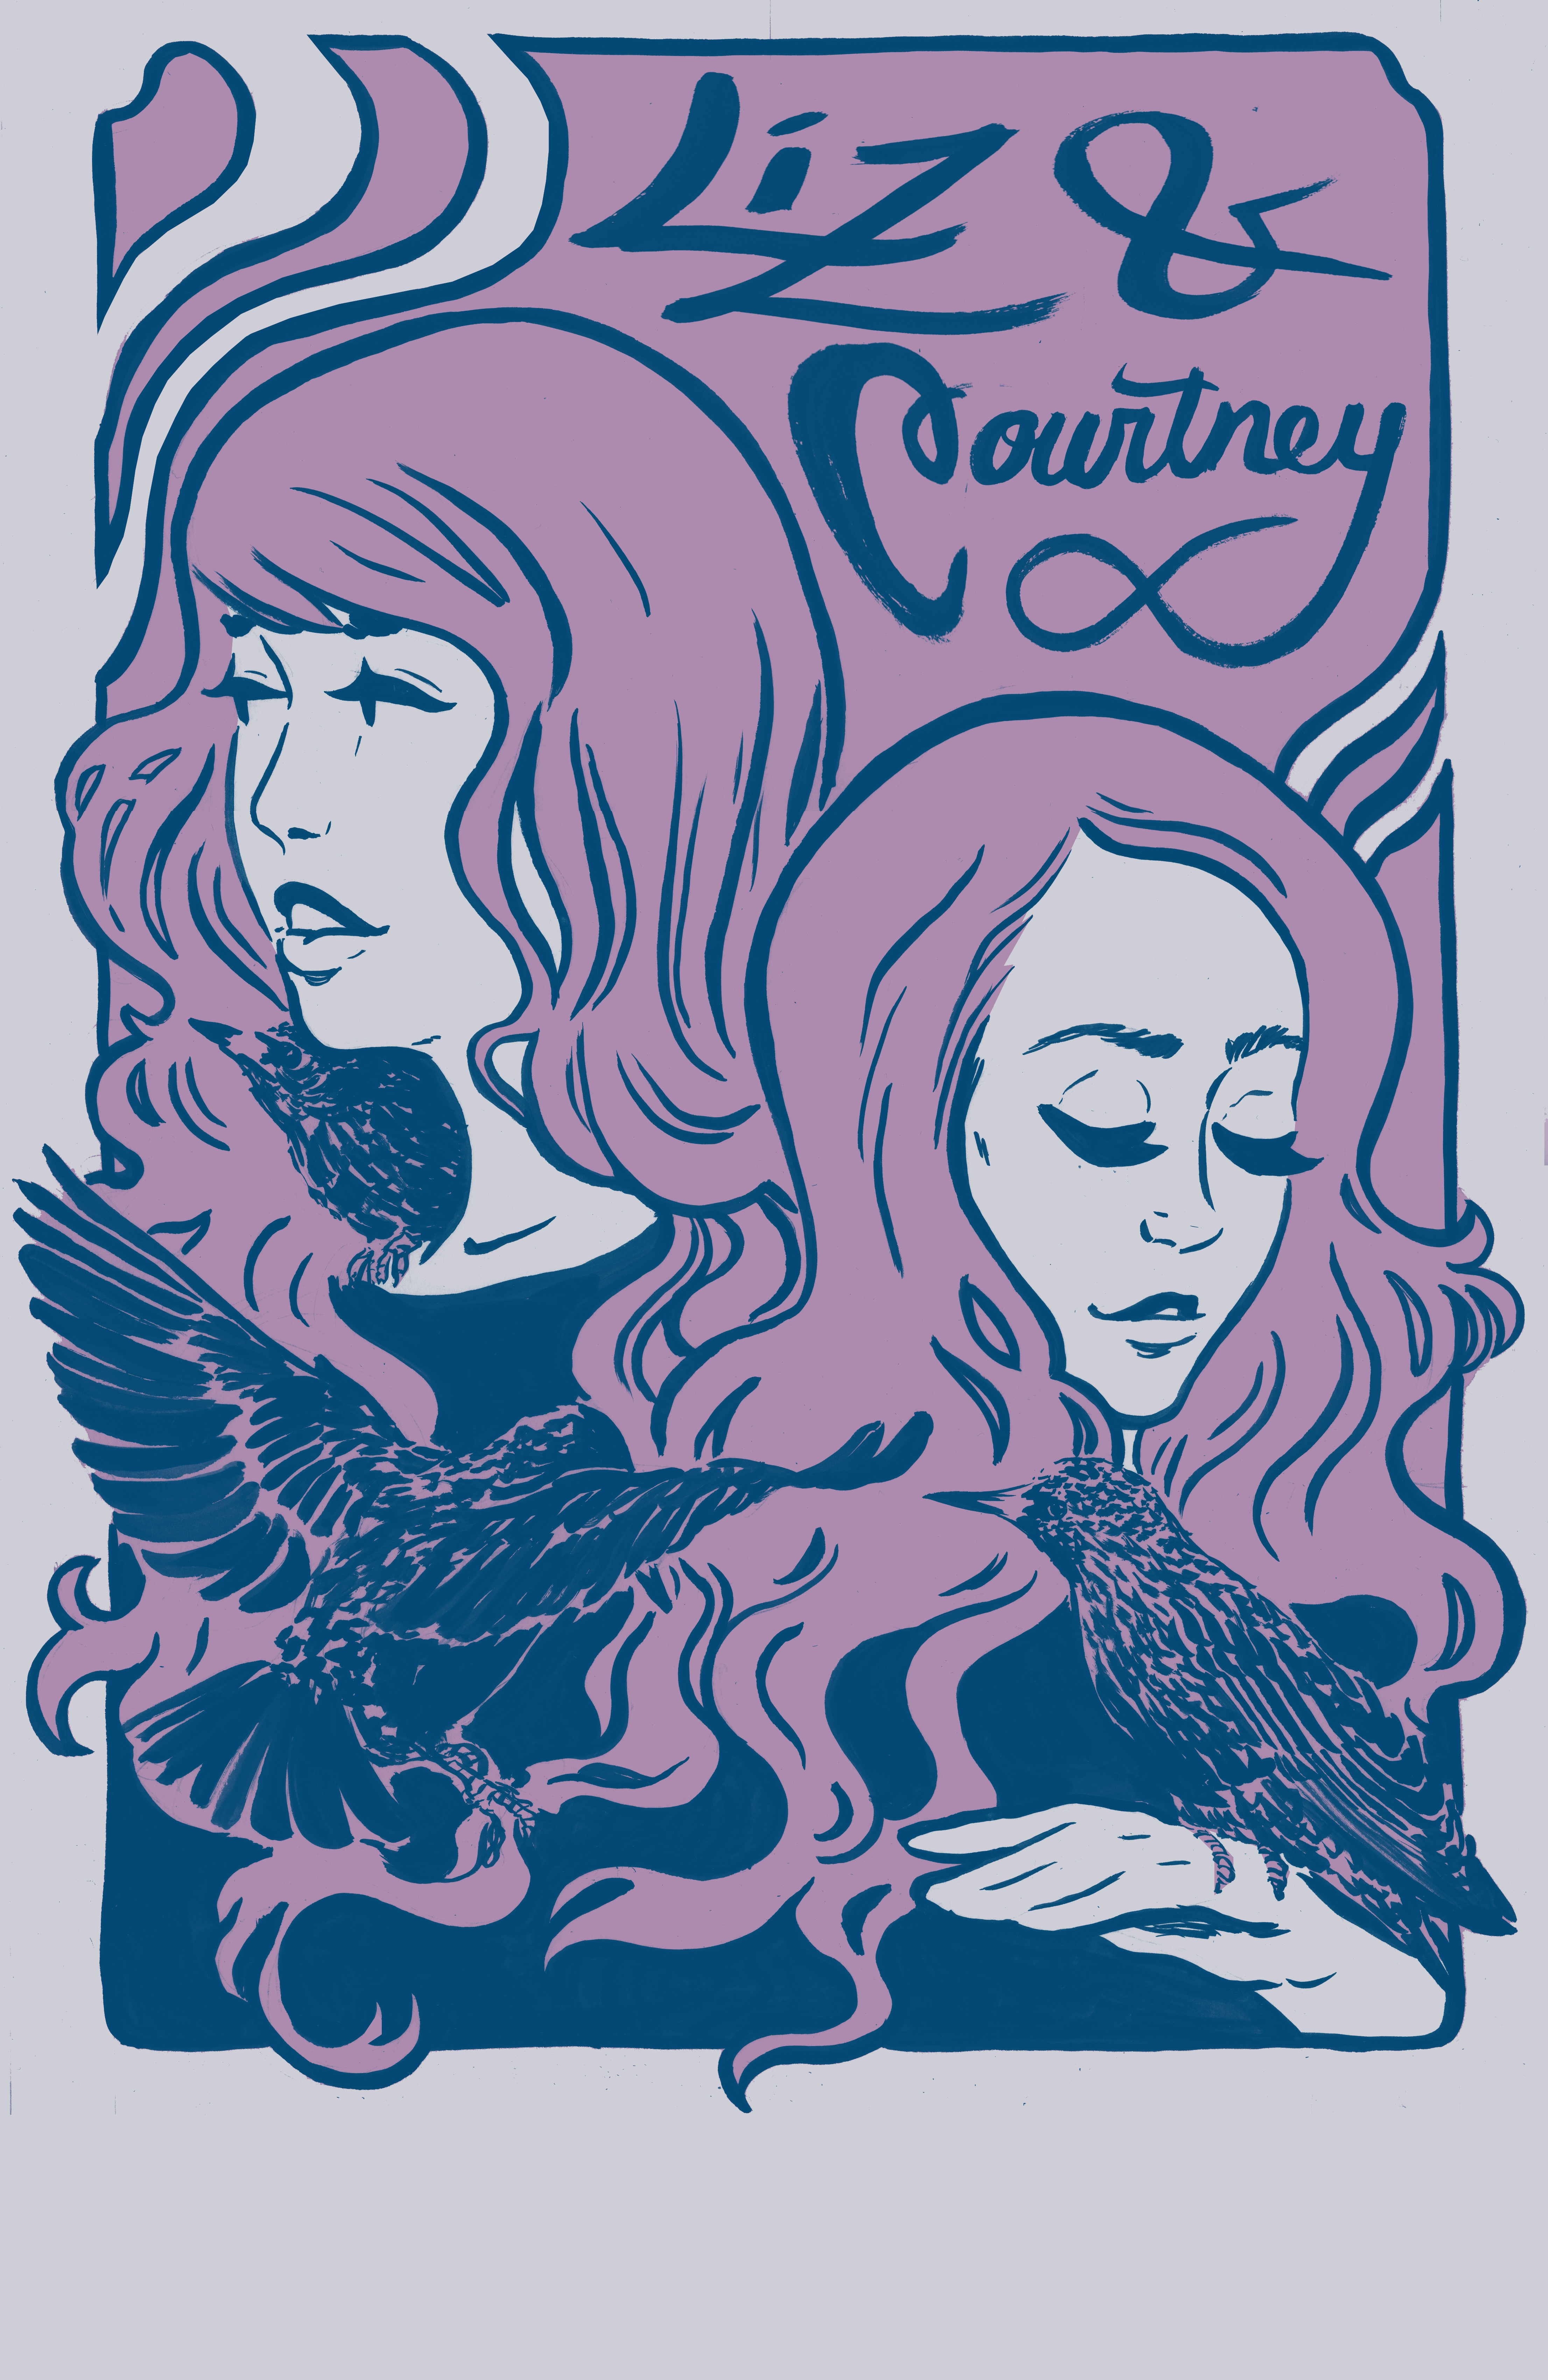 Liz & Courtney Illustration